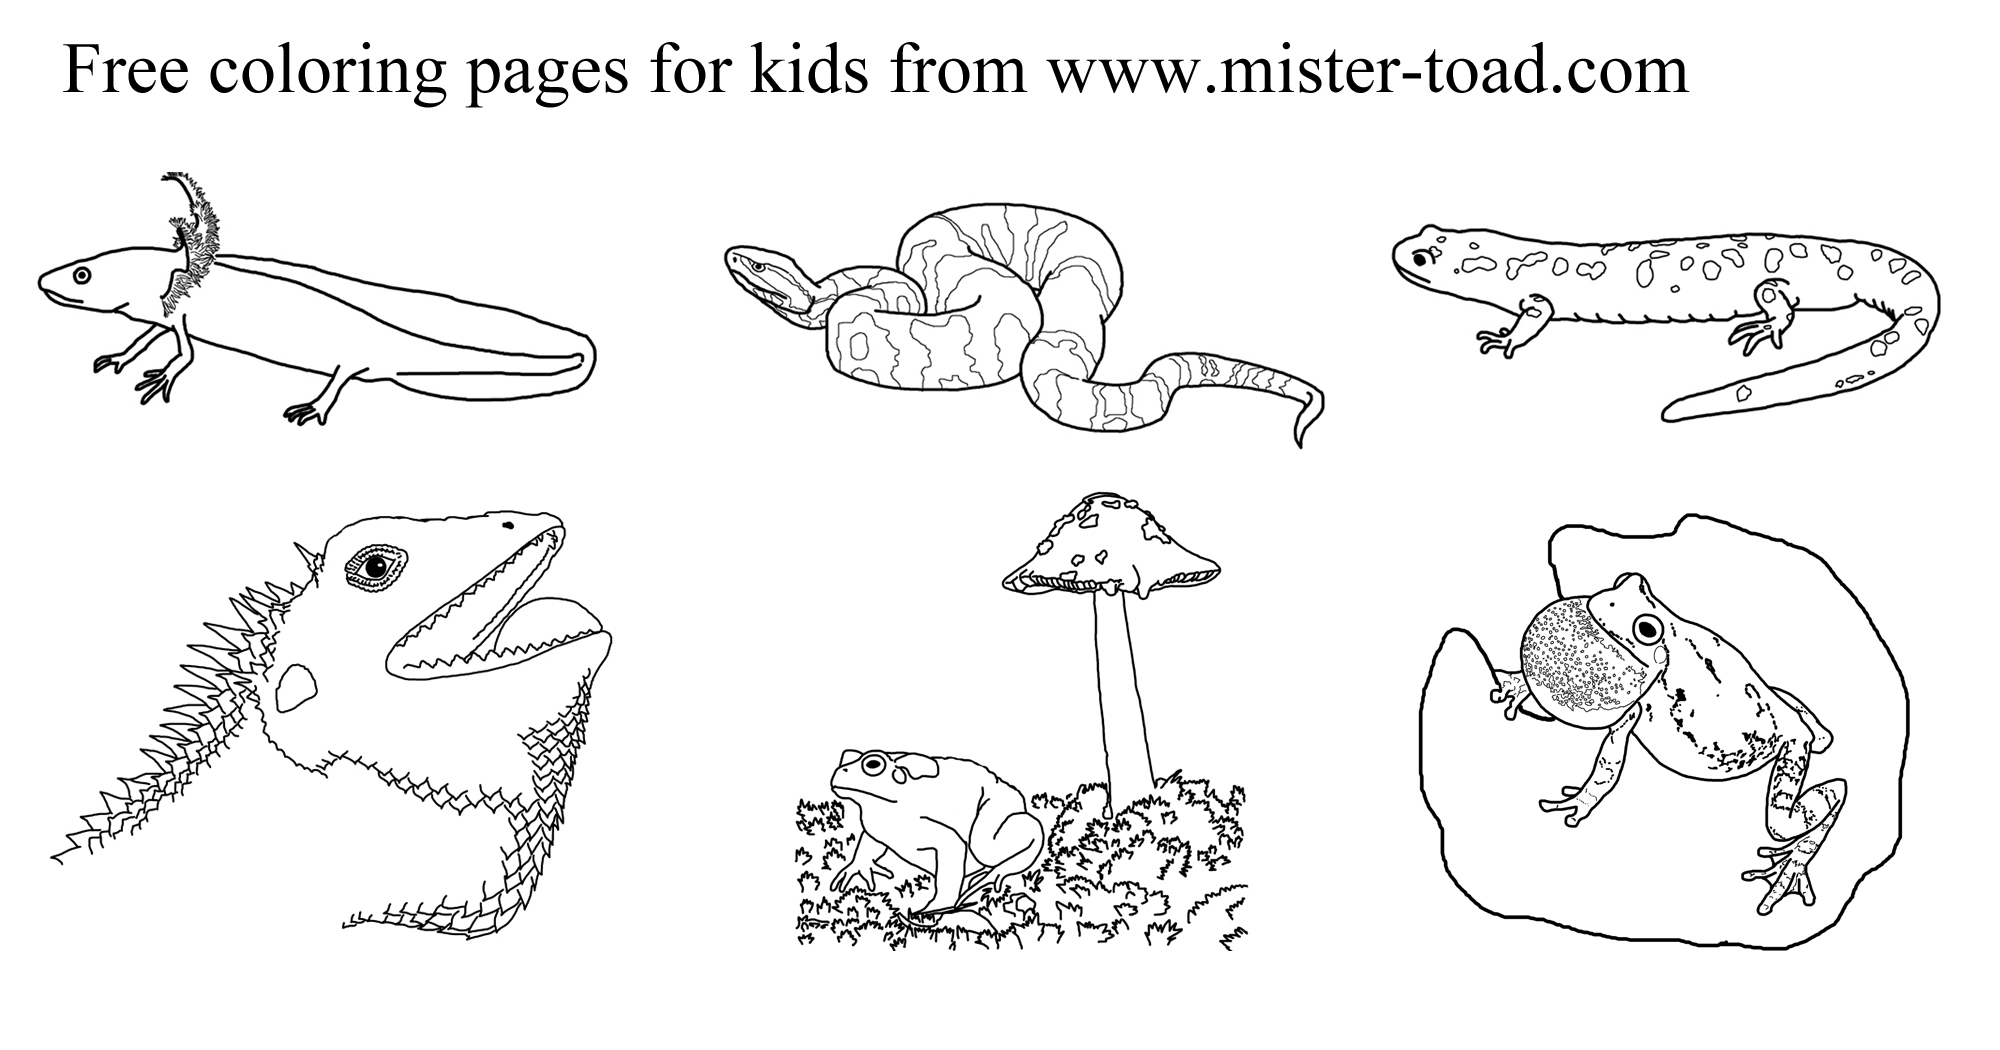 Reptiles And Hibians Coloring Pages